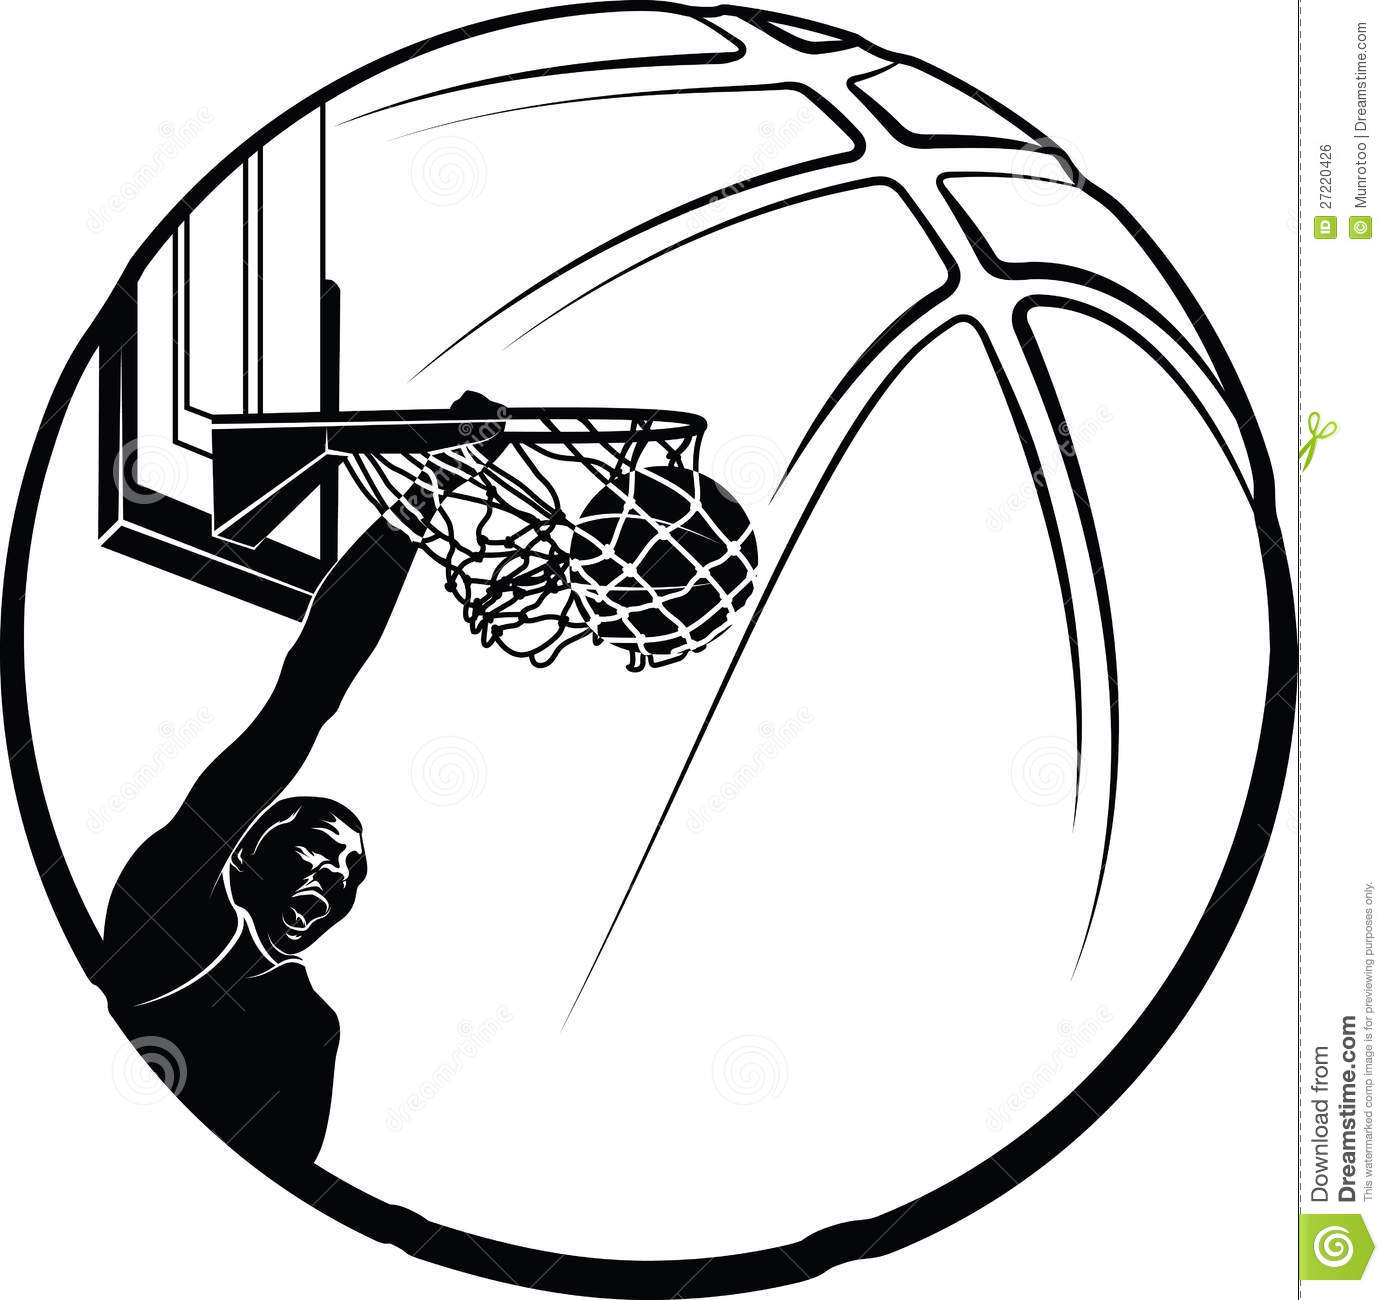 1388x1300 Basketball Clipart Black And White